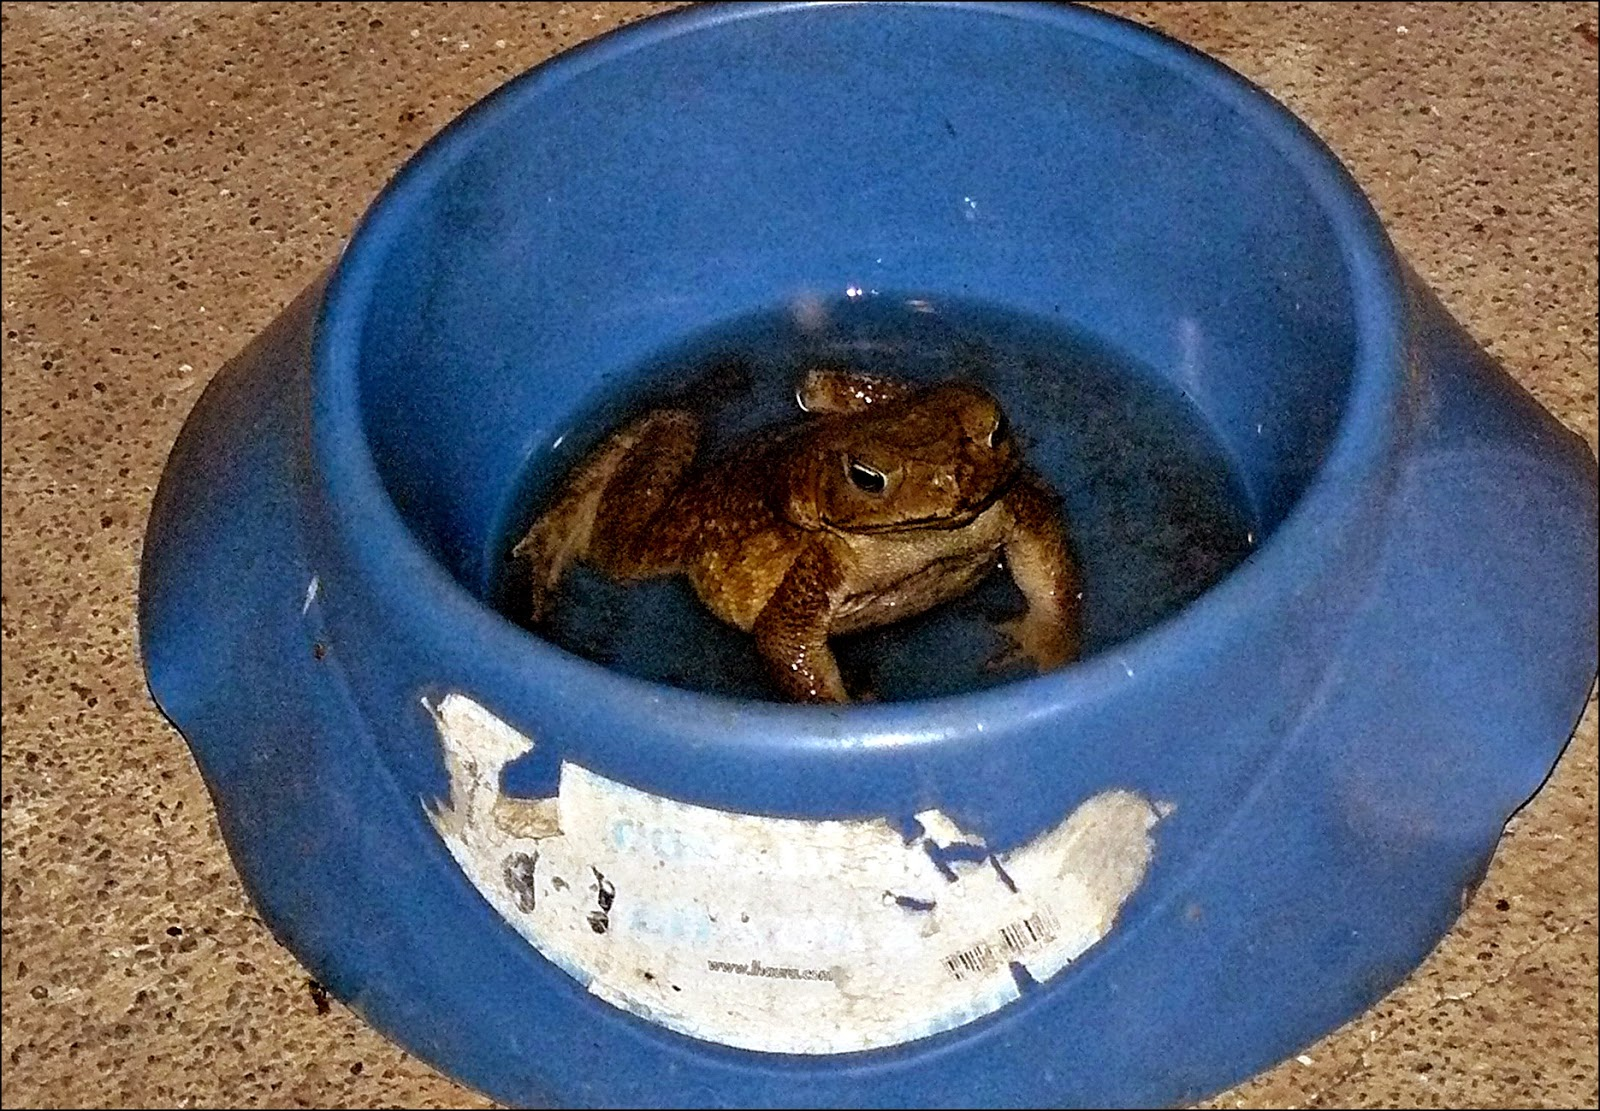 large cane toad in dog's water bowl